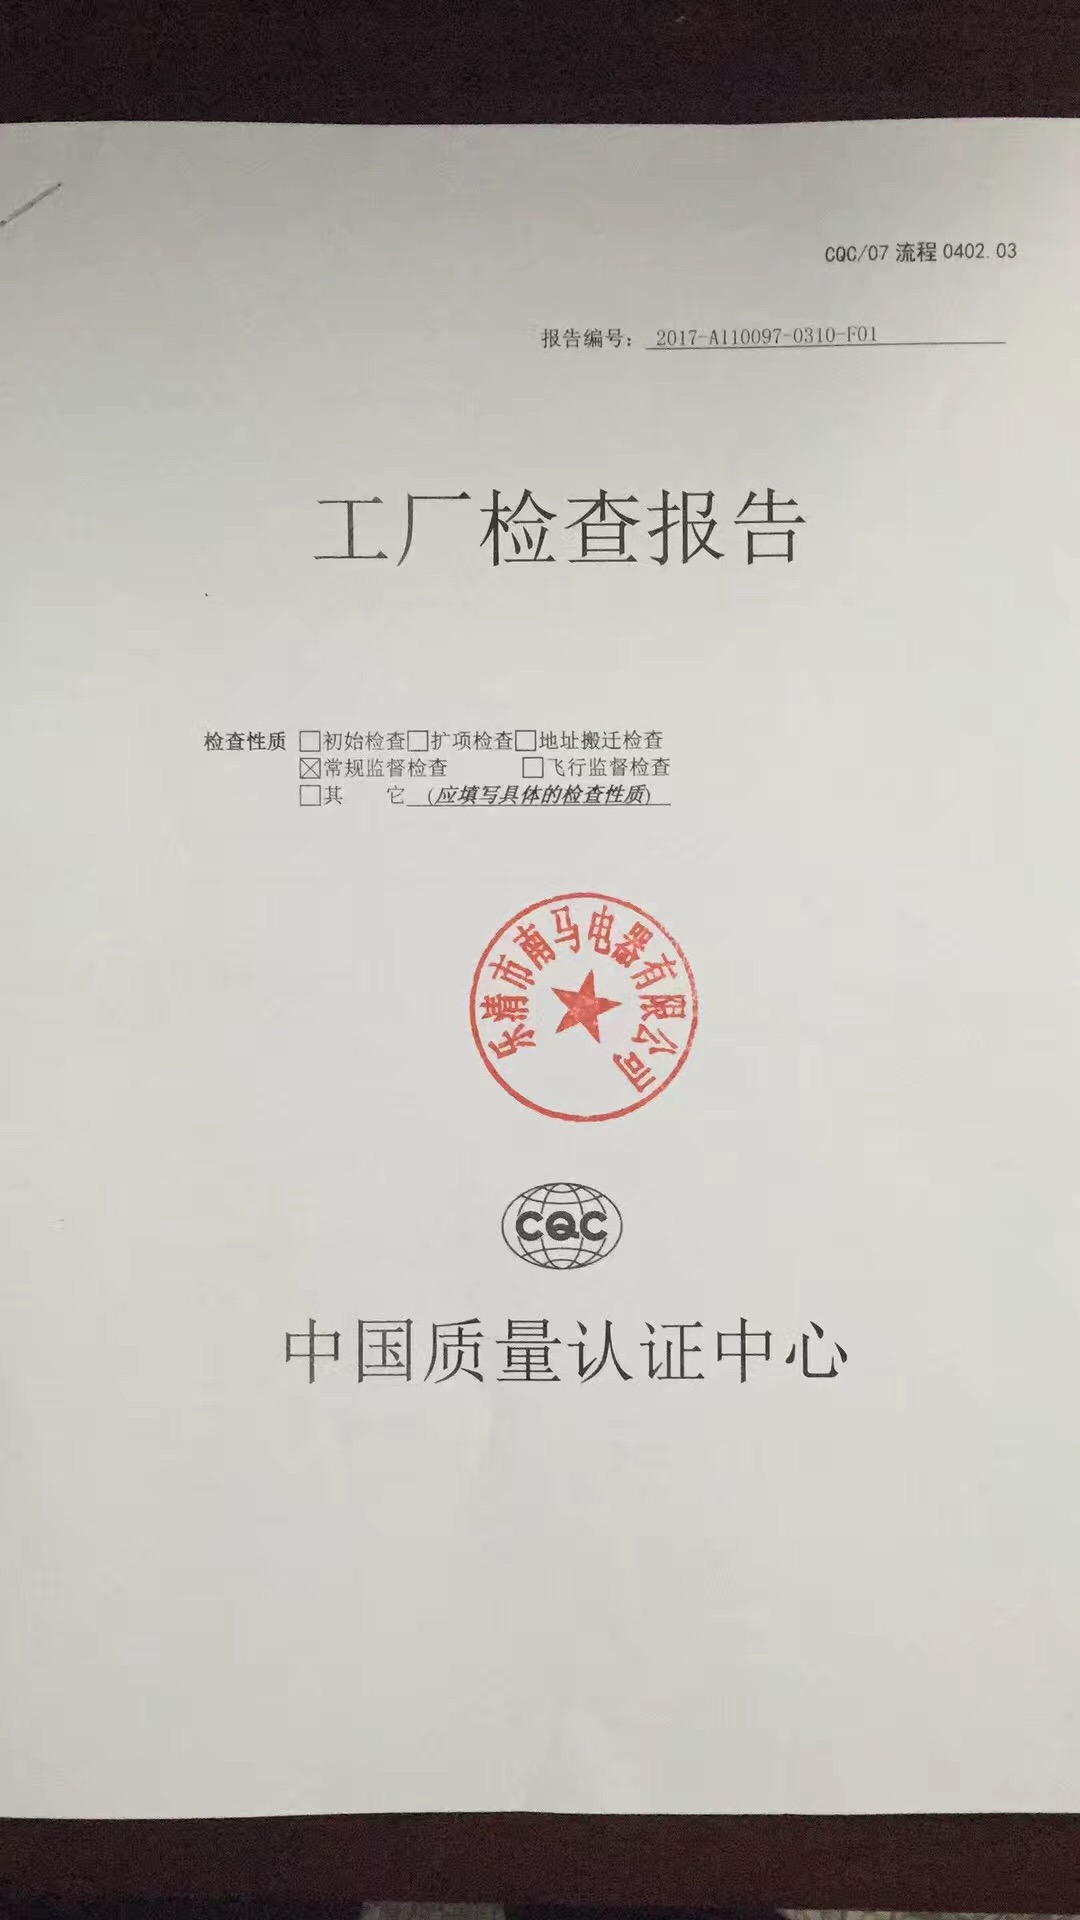 Factroy testing report by CCC